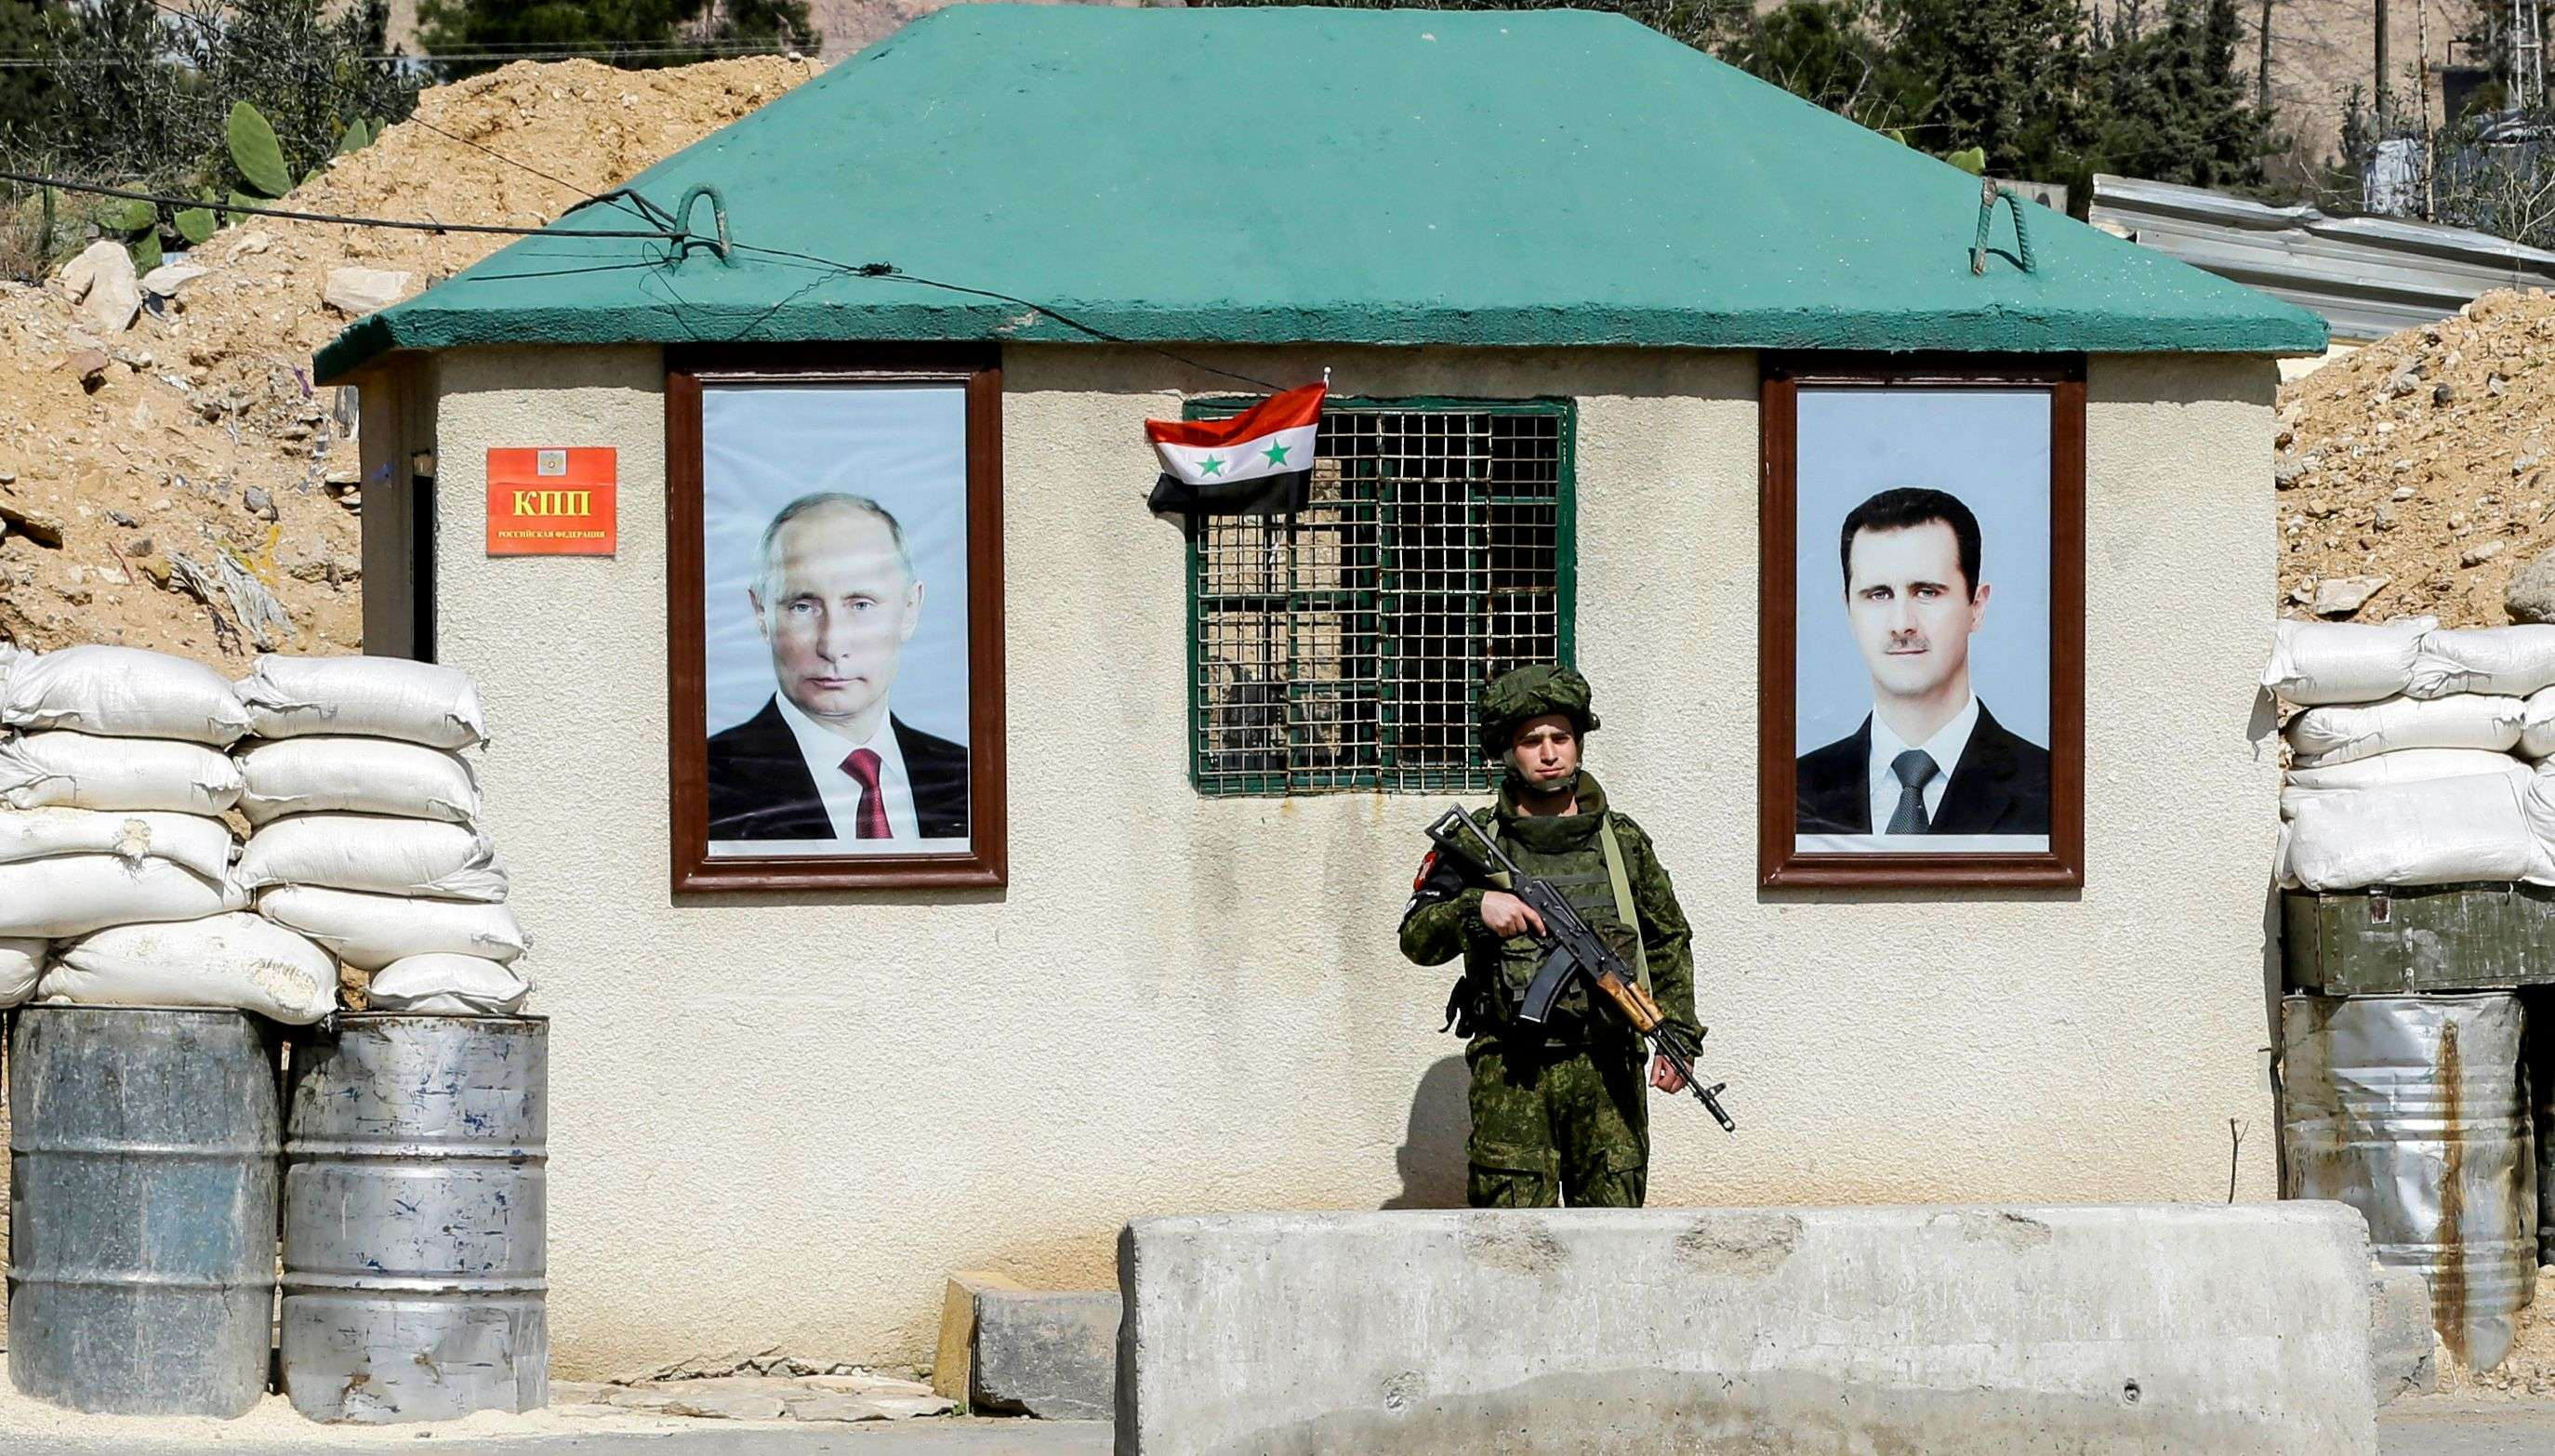 A Russian army soldier standing guard between the portraits of Syrian President Bashar al-Assad (R) and Russian President Vladimir Putin, outside at a checkpoint on the outskirts of Damascus, on March 1. (AFP)